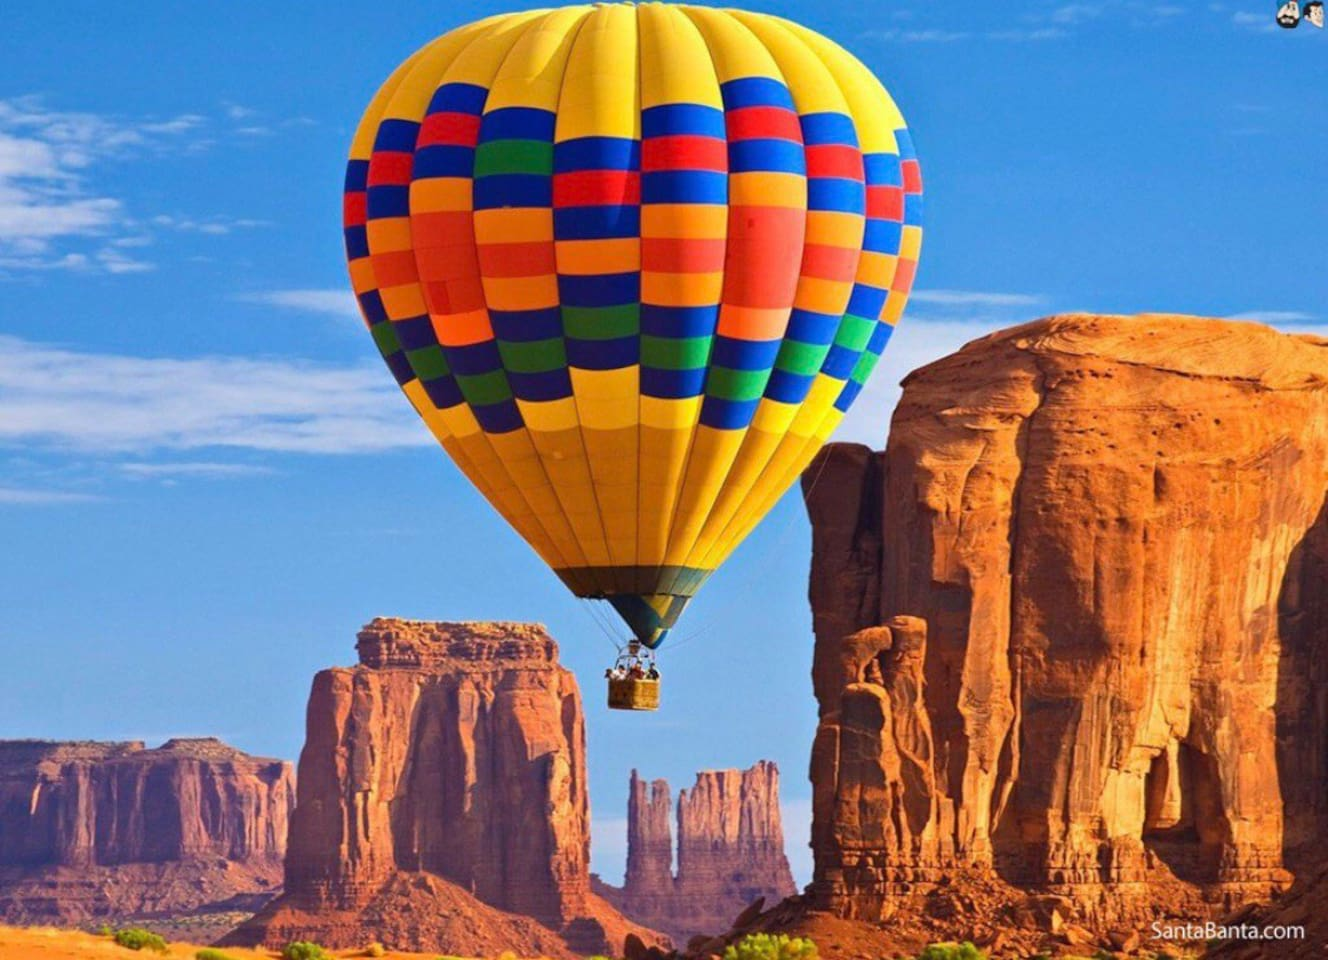 Stunning views through the red rock monuments from the hot air ballon ride!